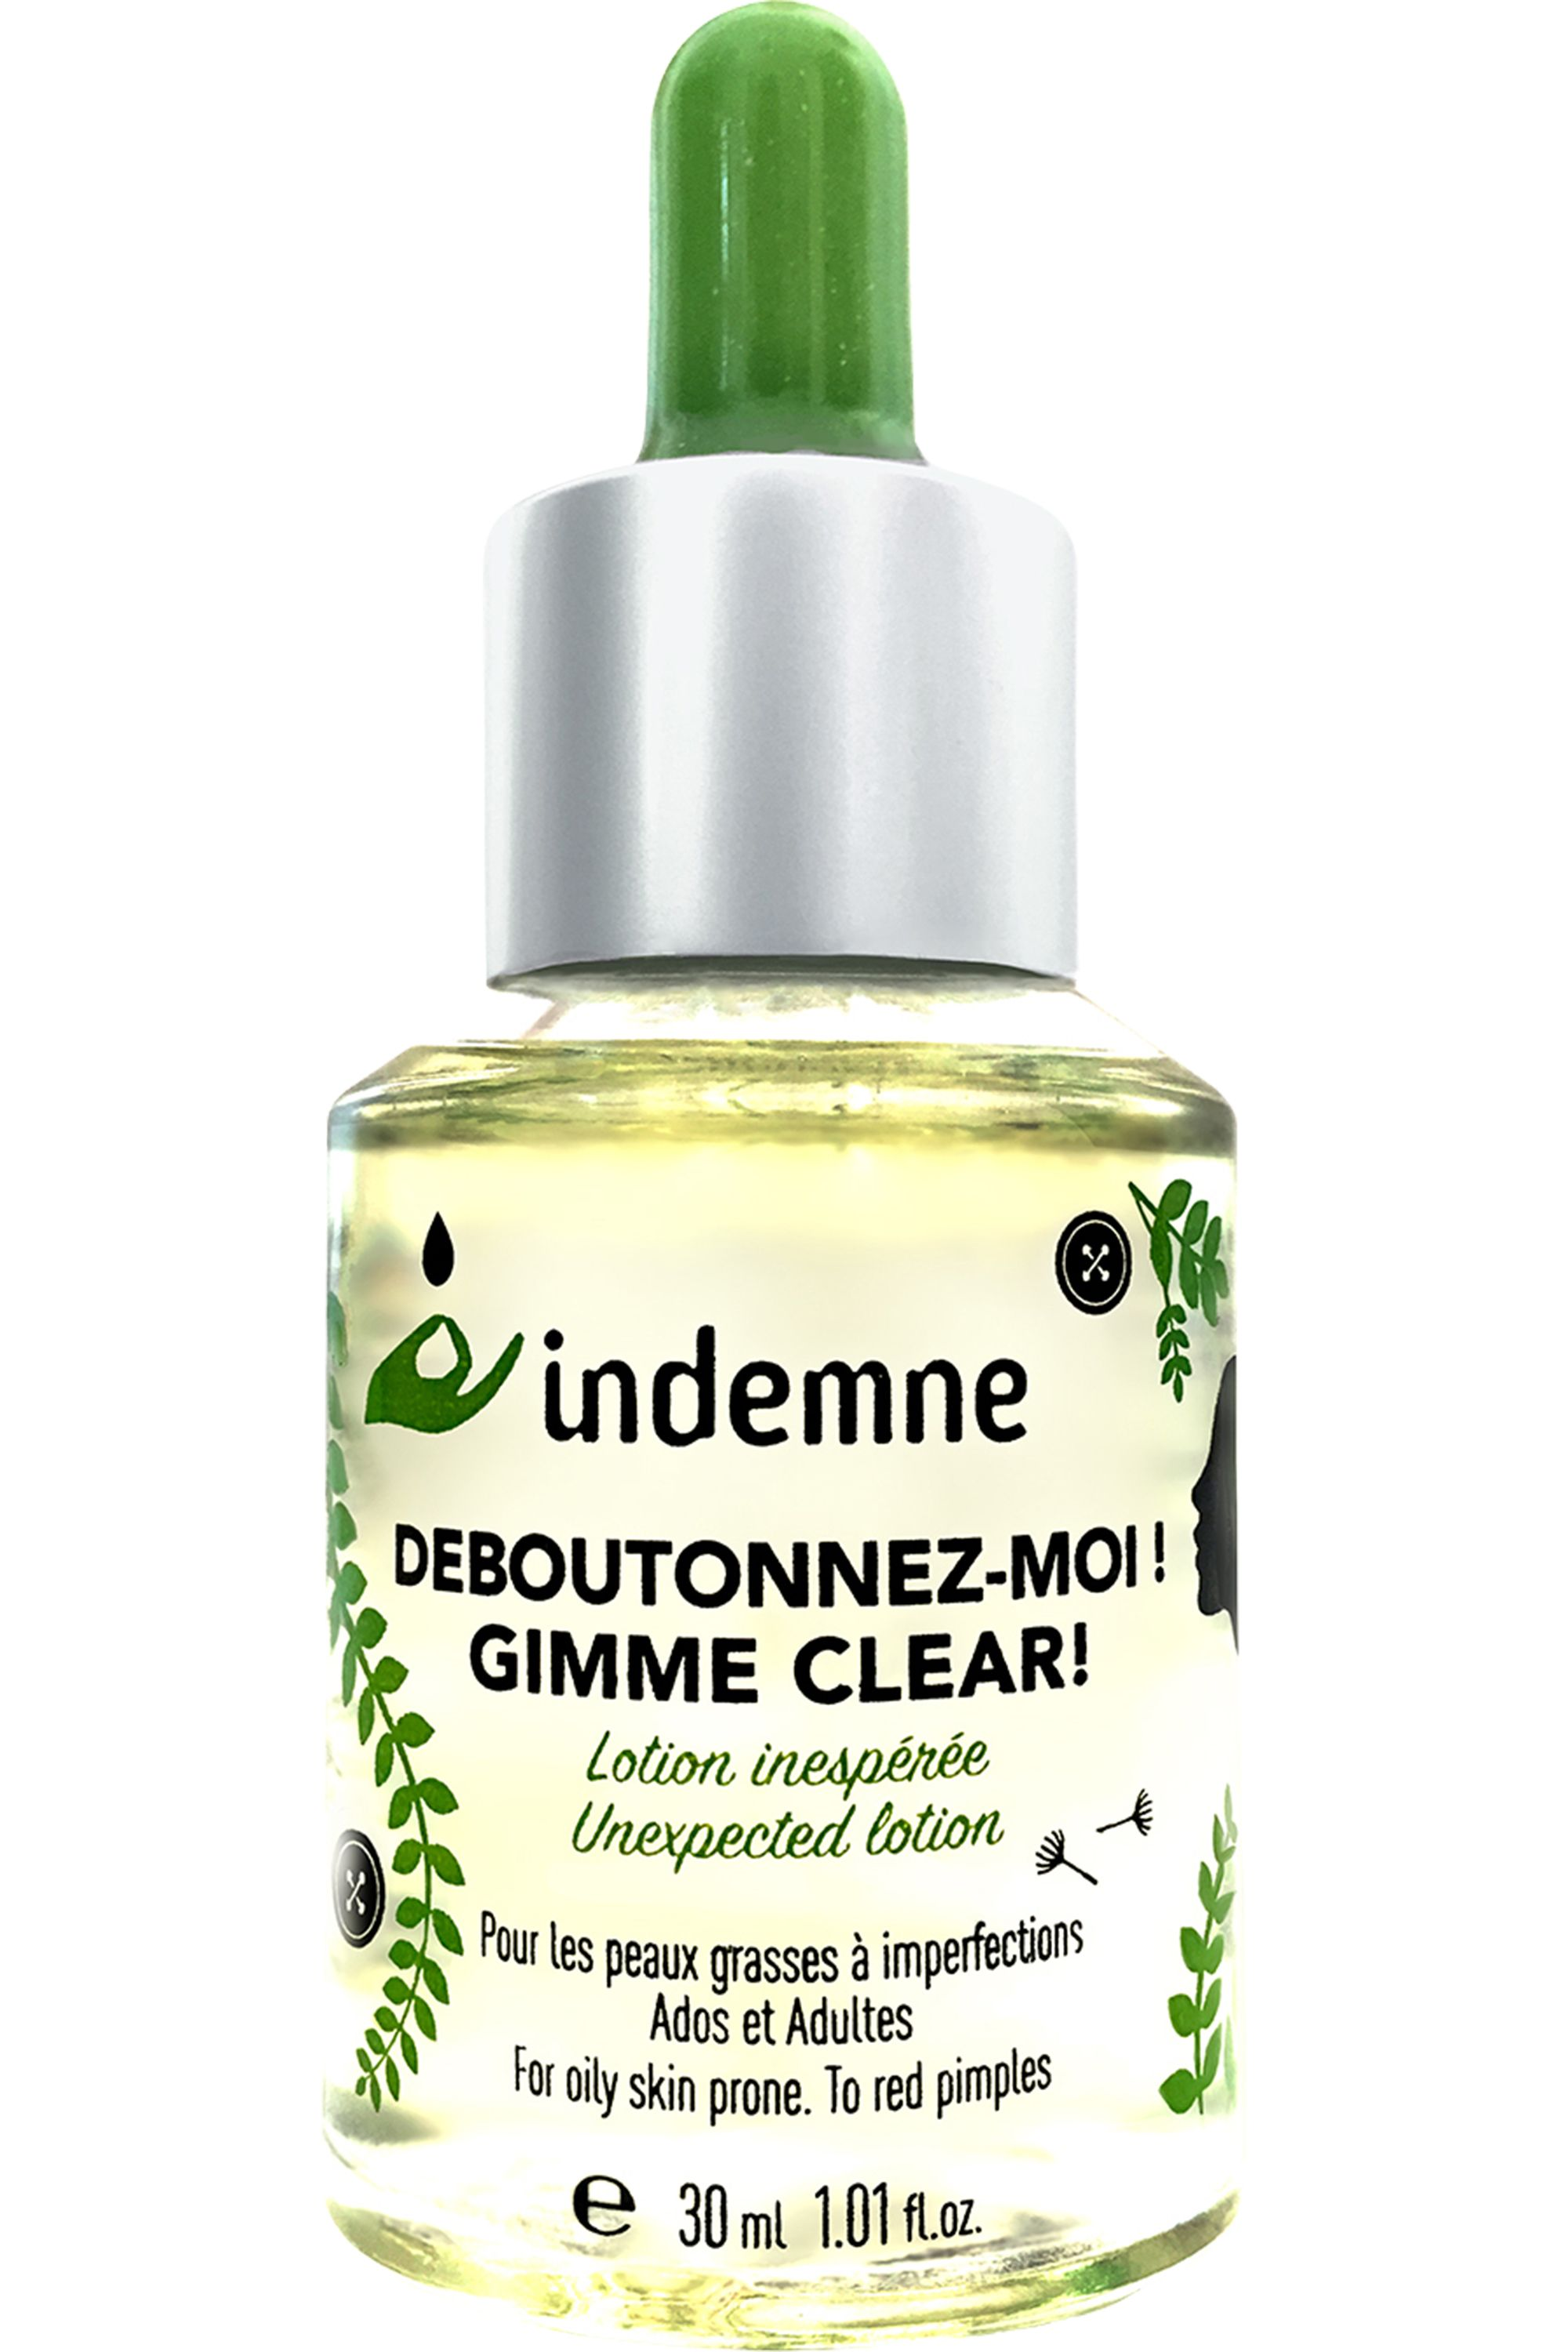 Blissim : Indemne - Soin anti-imperfections Déboutonnez-moi - Soin anti-imperfections Déboutonnez-moi